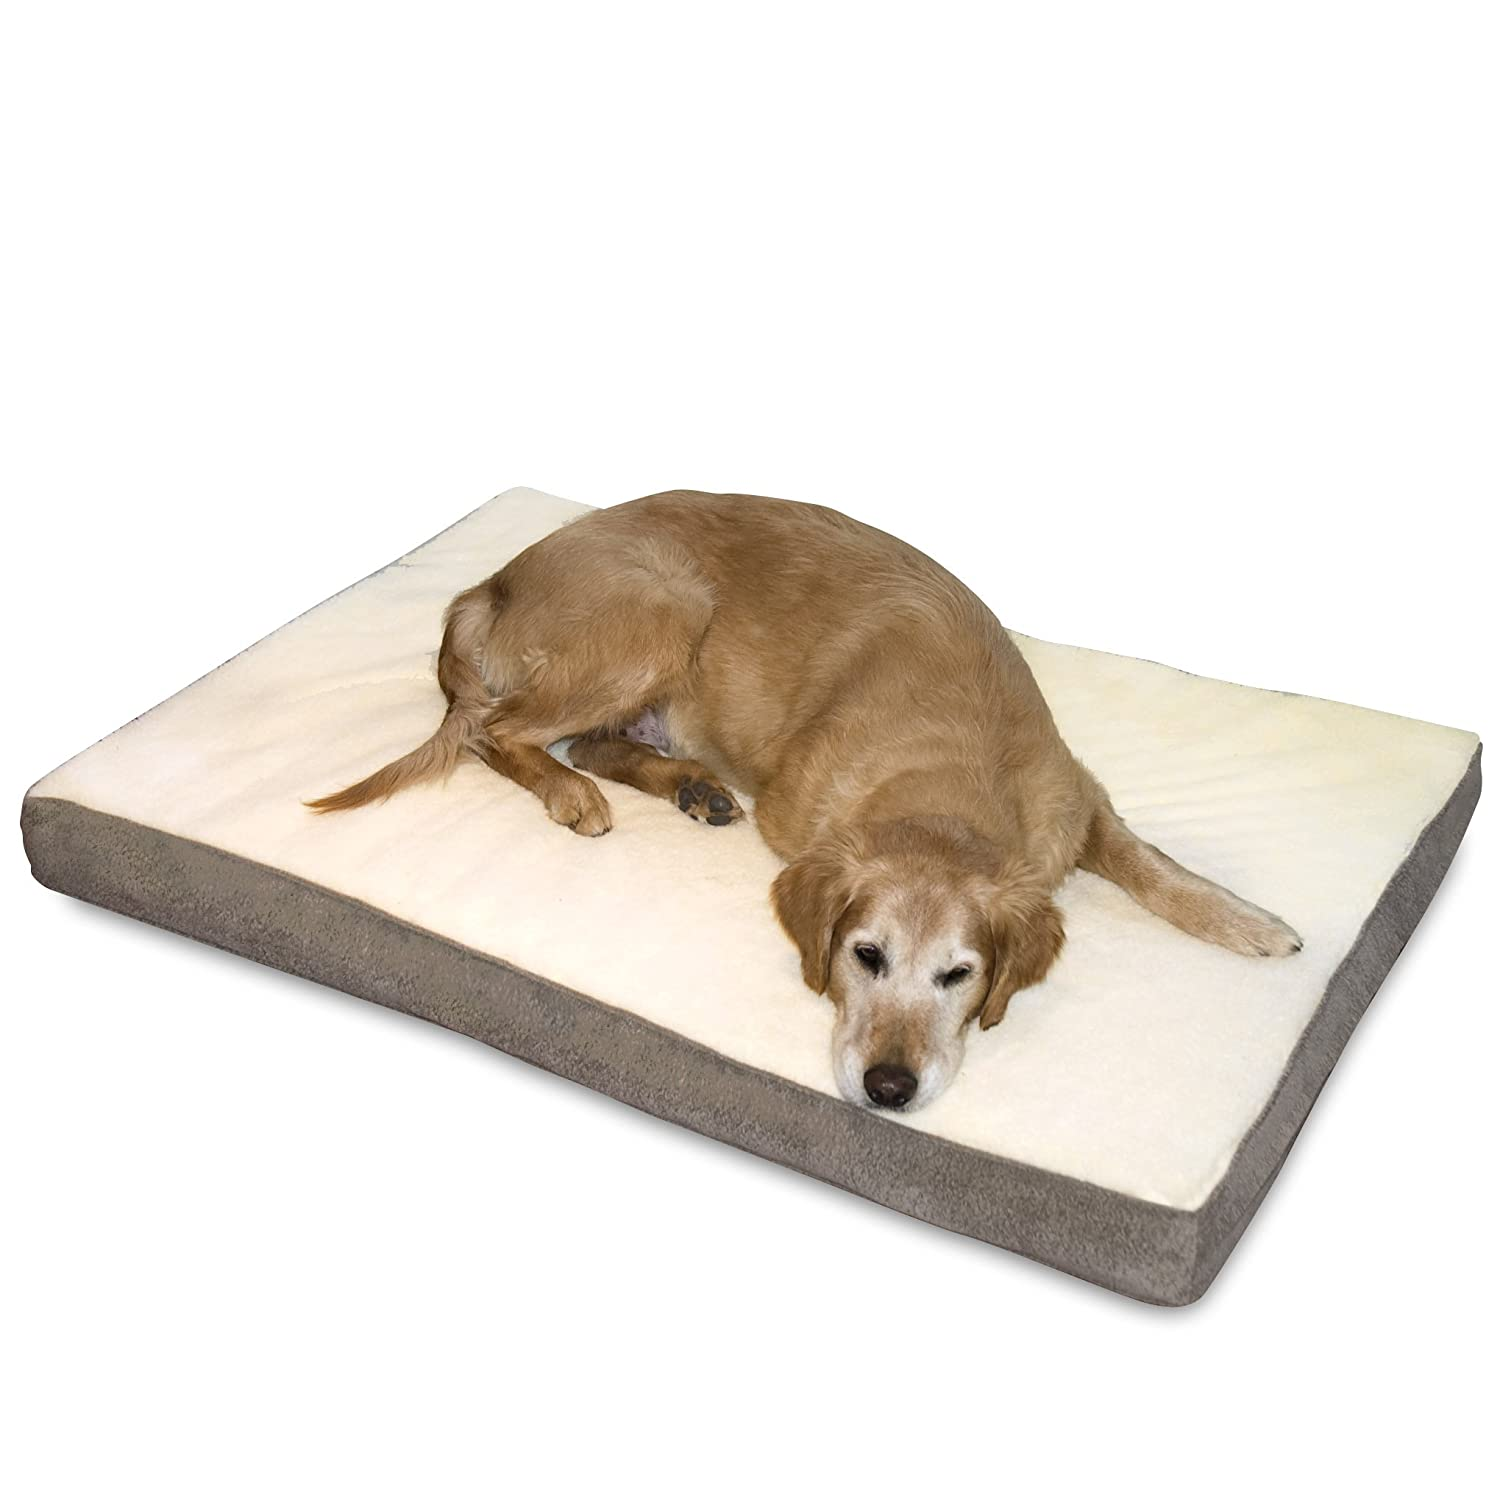 Large Breed Dog Bed Reviews